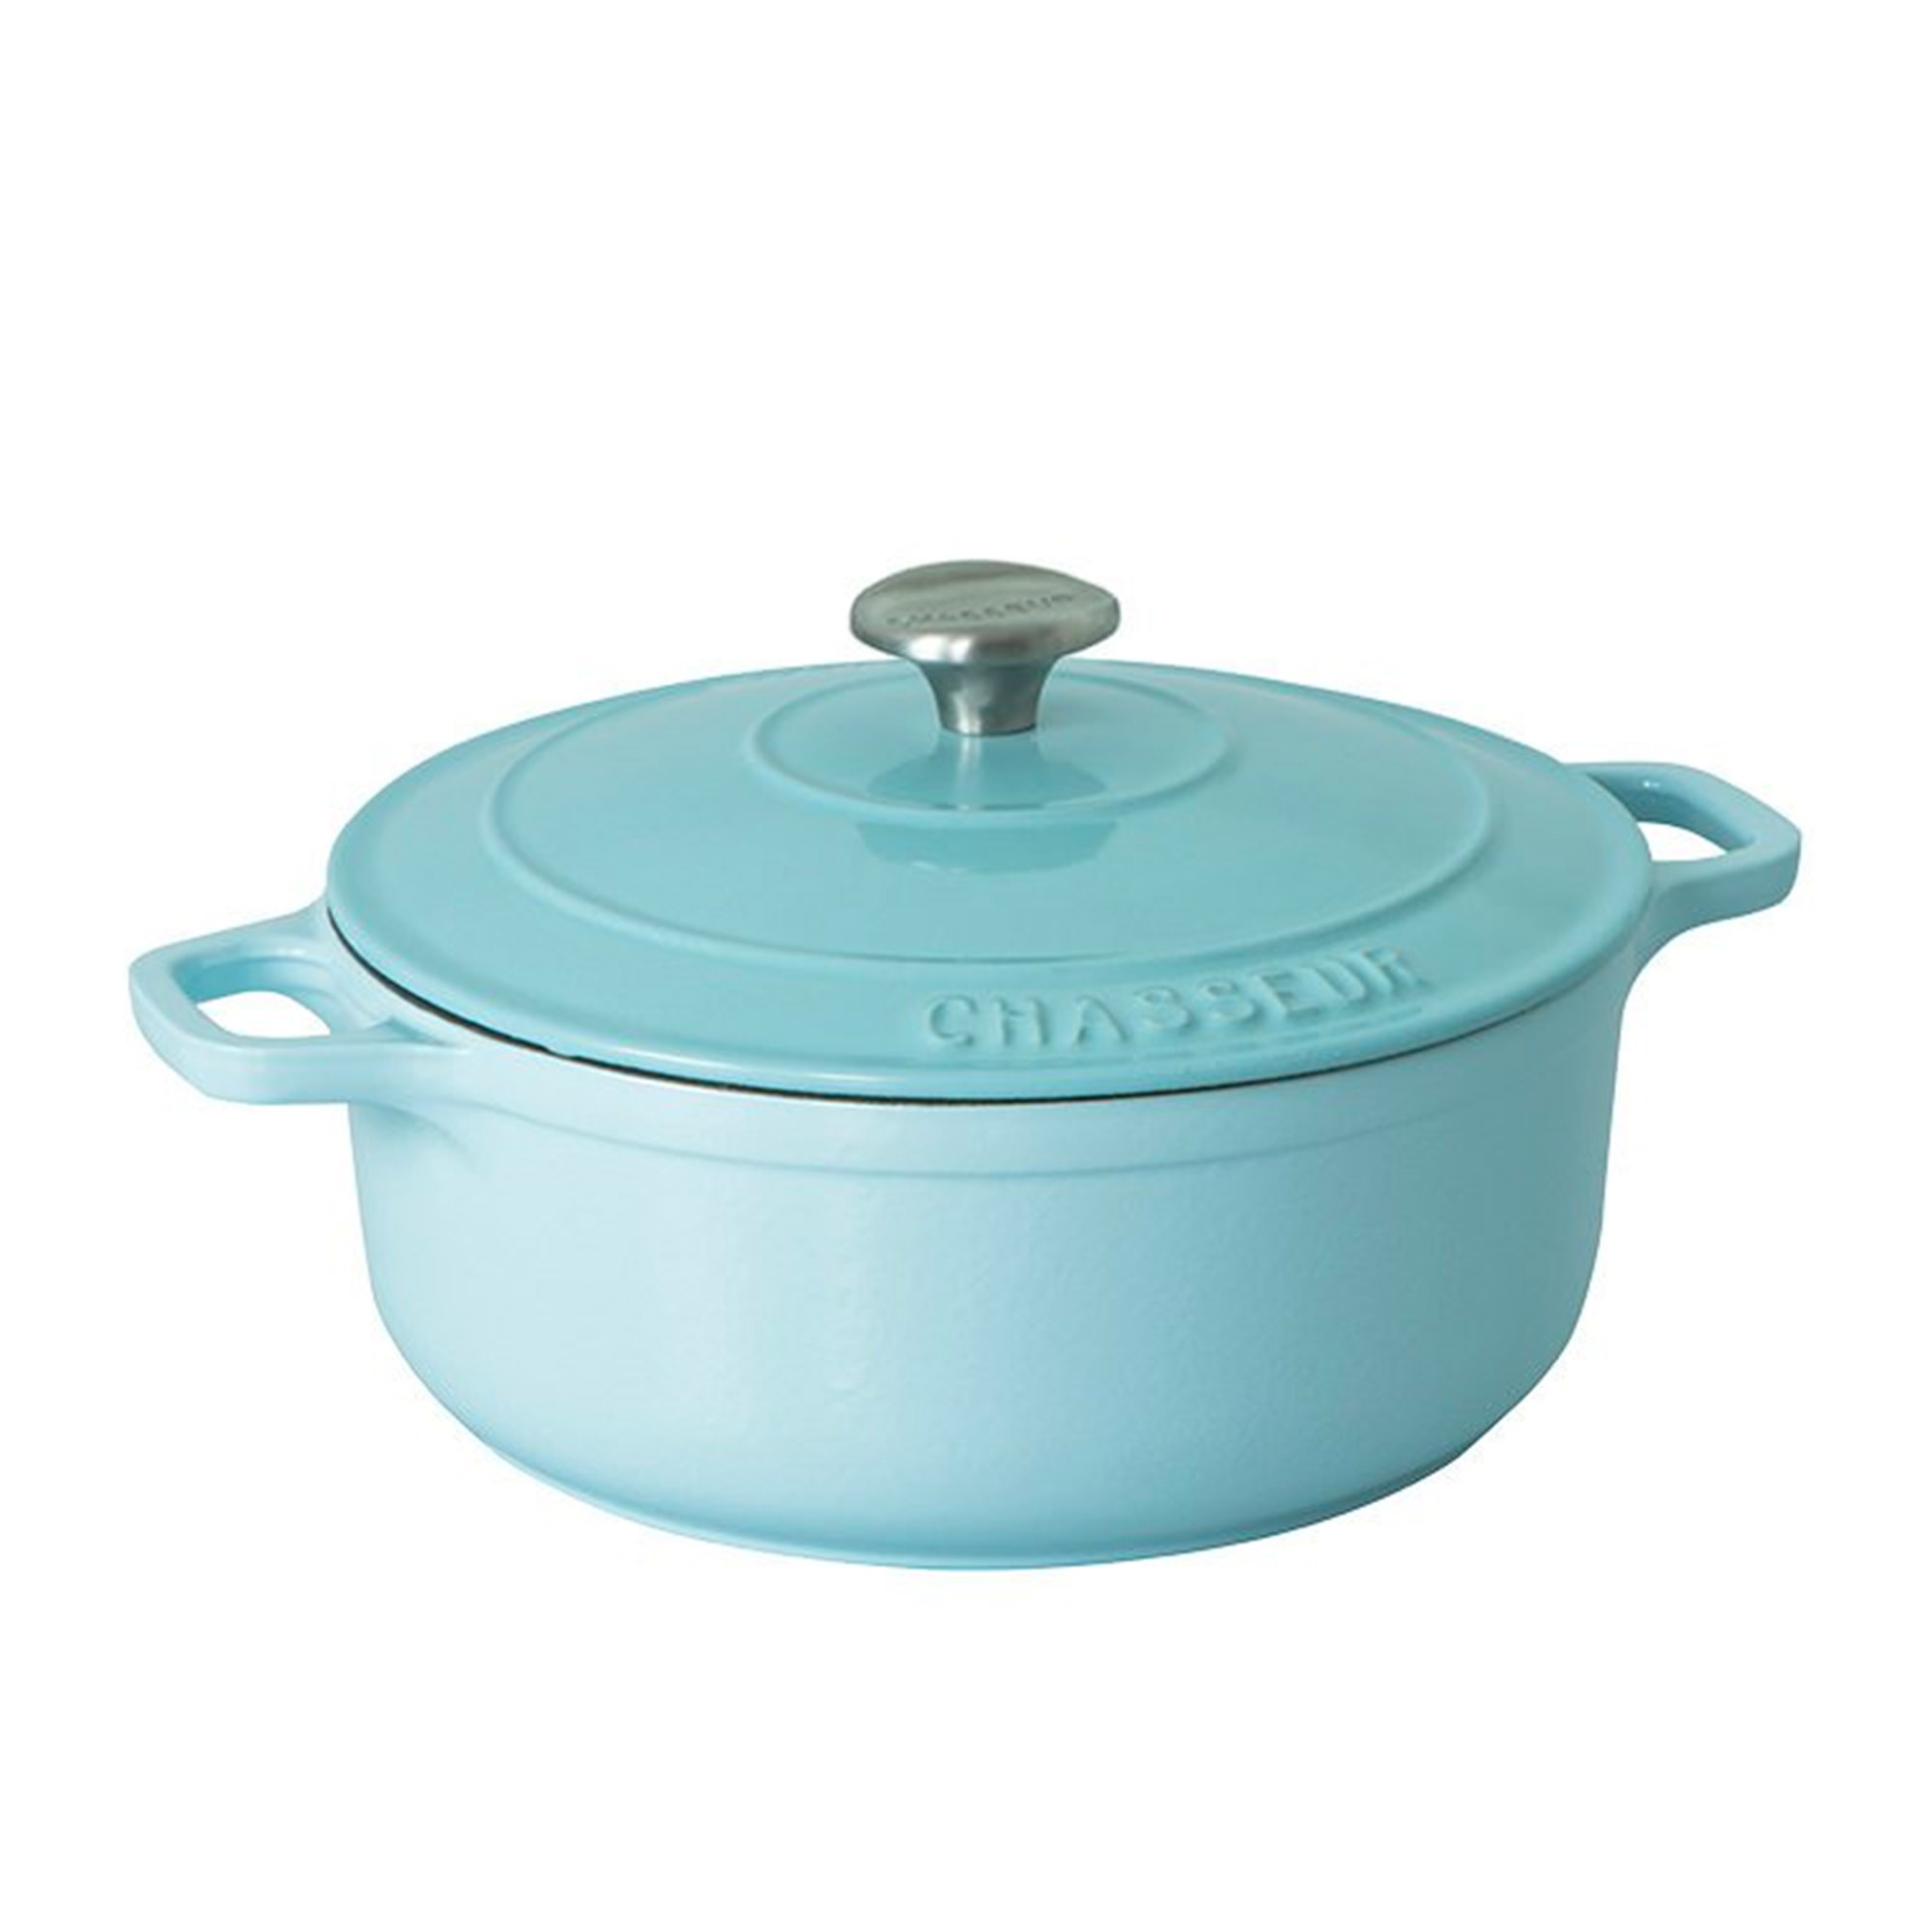 Chasseur Round French Oven 28cm - 6.1L Duck Egg Blue